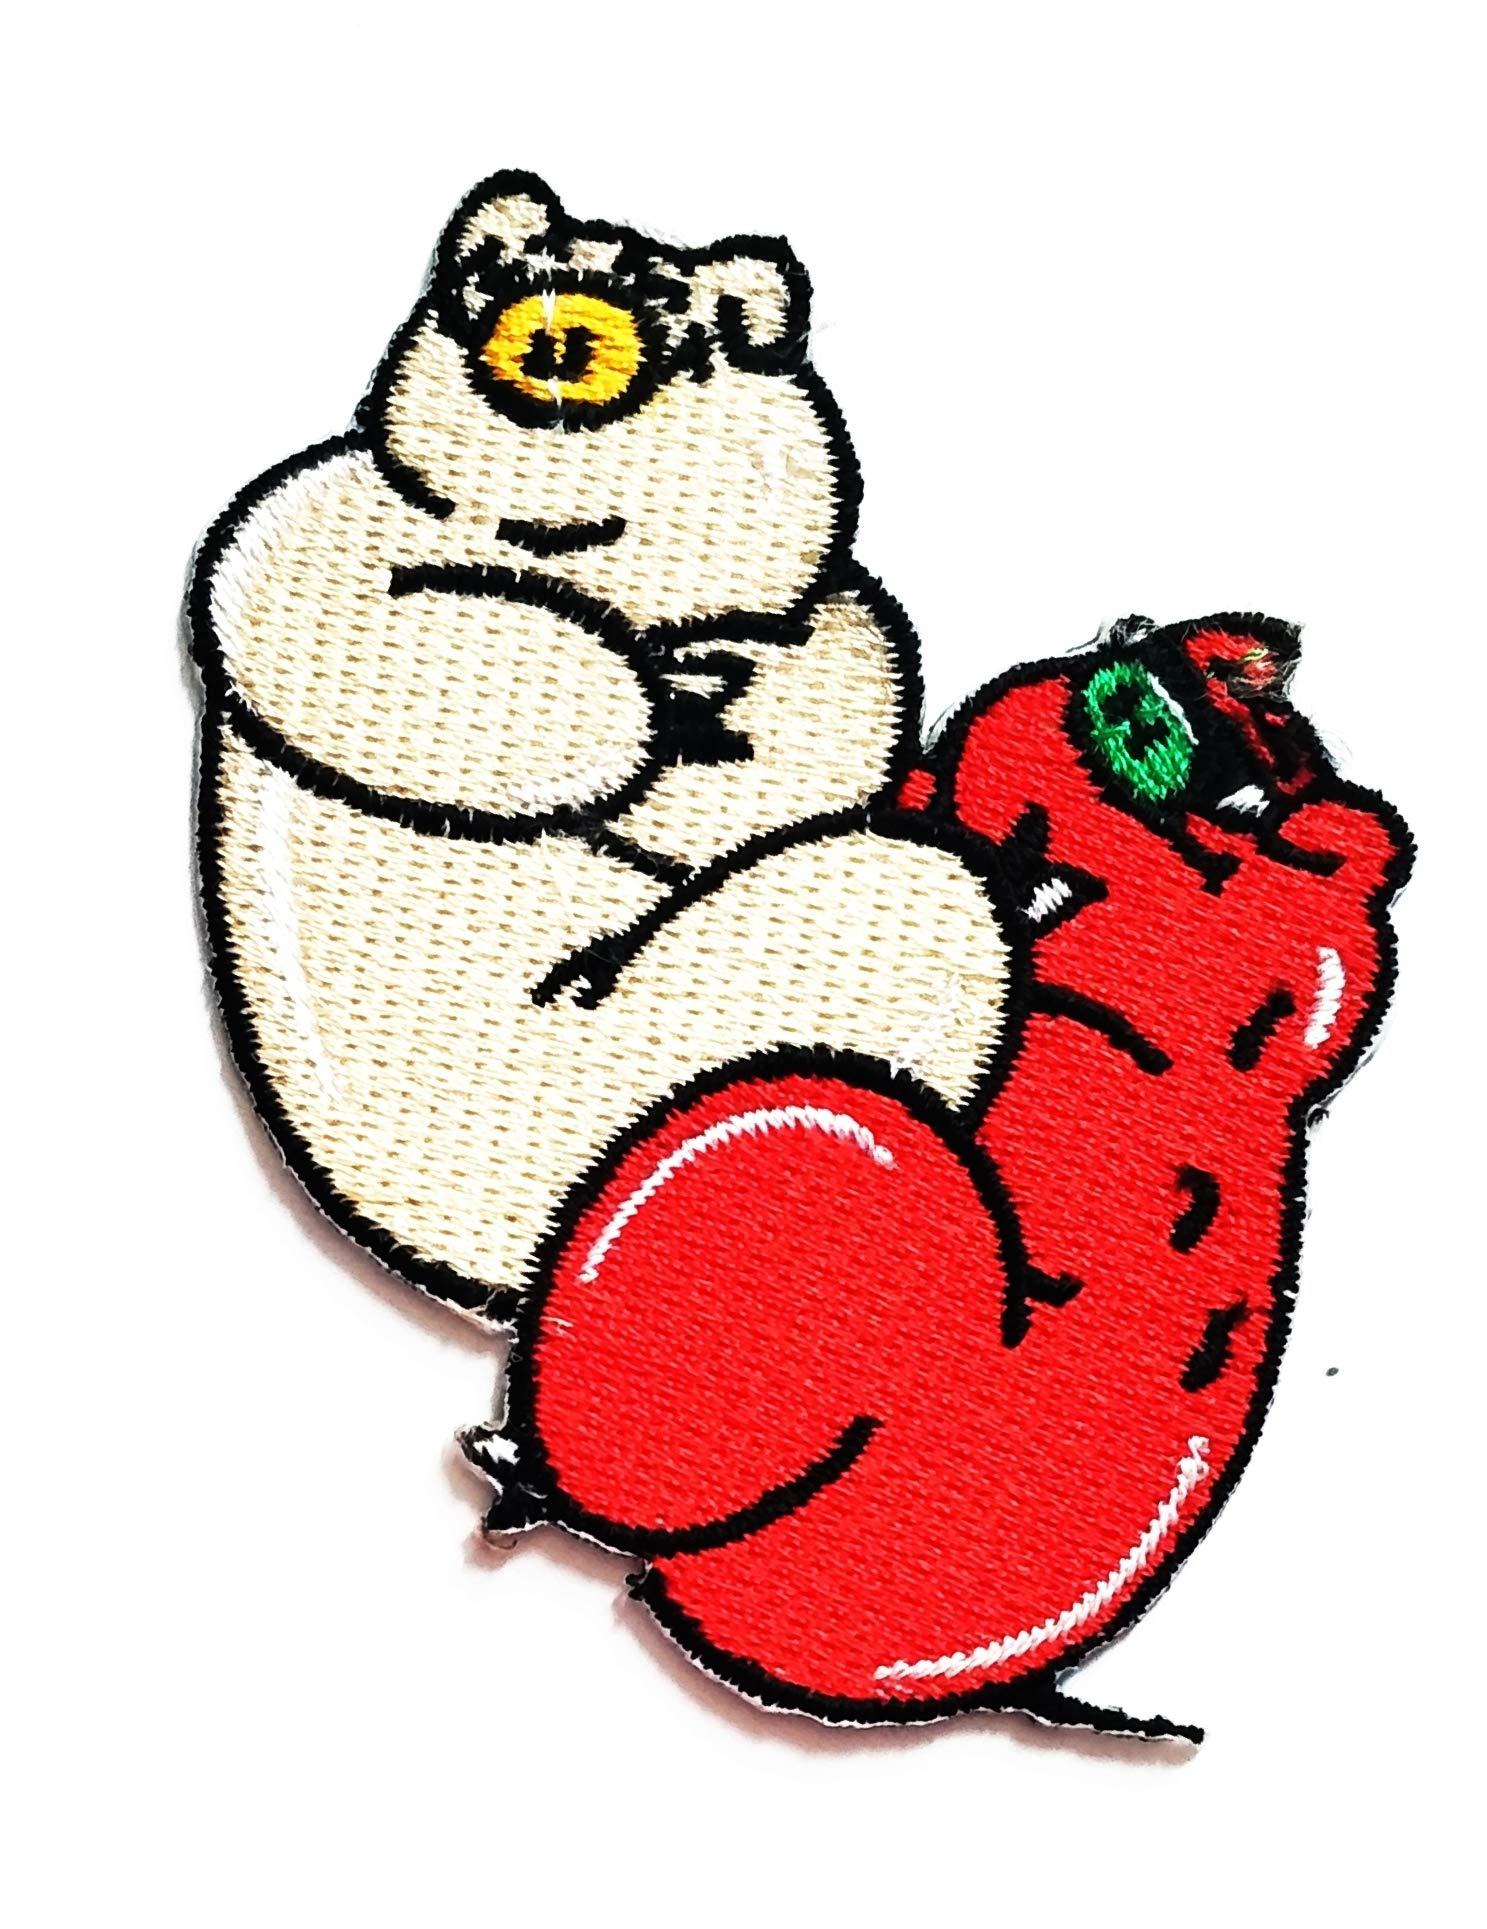 Nipitshop Patches Cute Pig Animal Farm Pig Sex Love Cartoon Kids Patch Embroidered Iron On Patch for Clothes Backpacks T-Shirt Jeans Skirt Vests Scarf Hat Bag